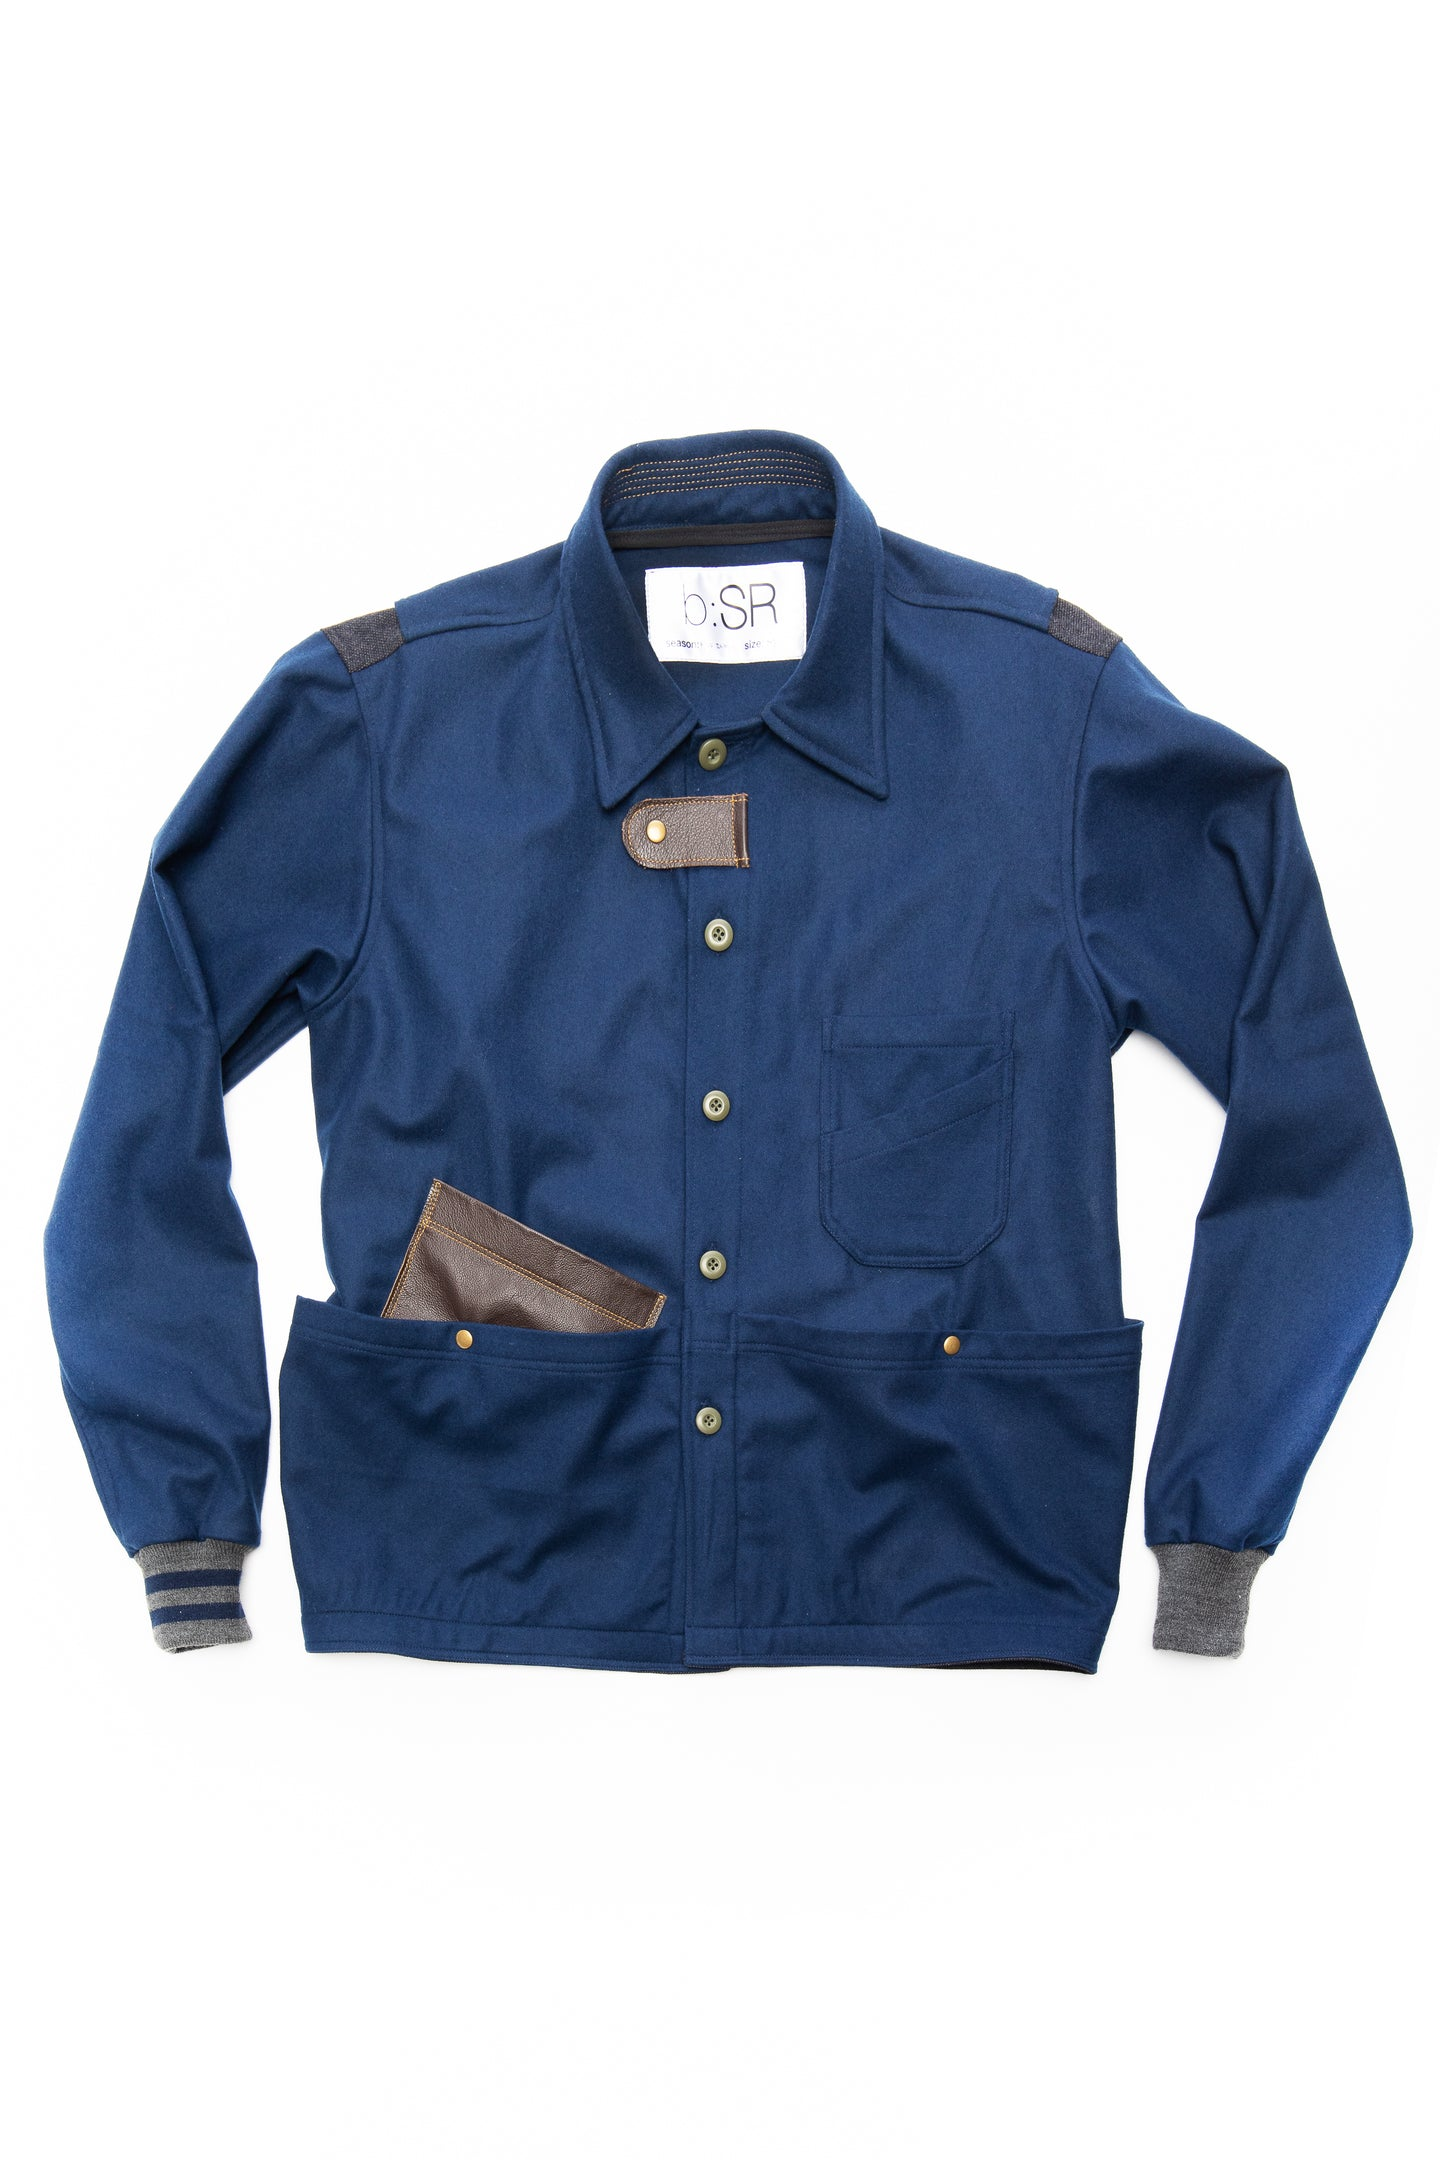 2020 workcoat- blue wool